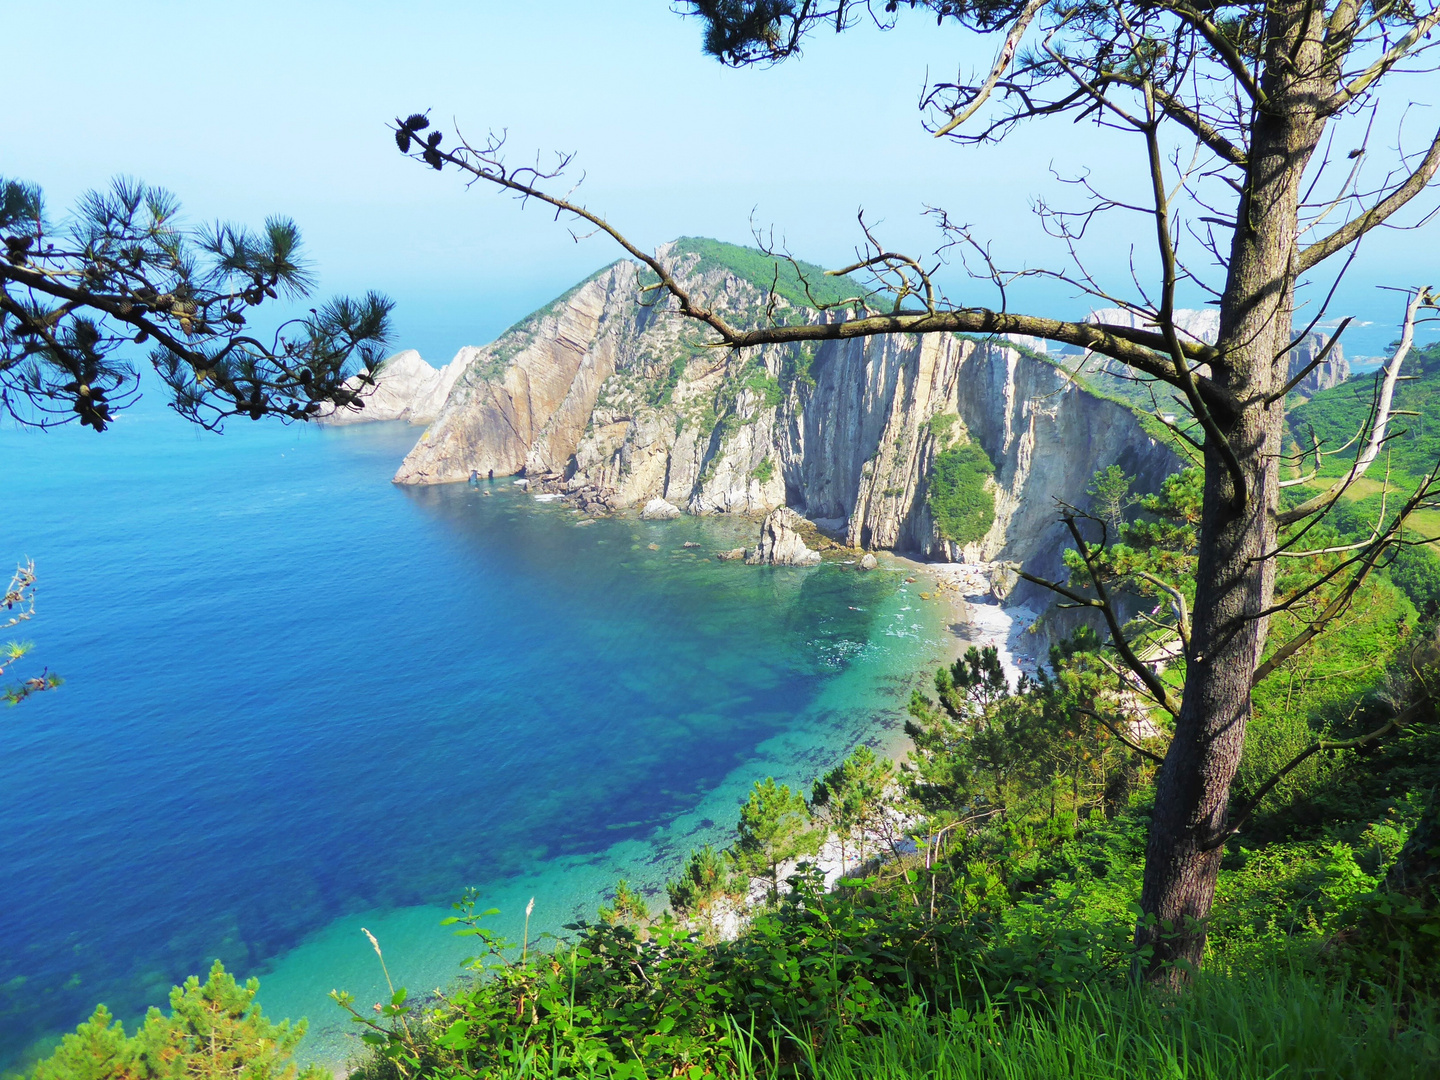 playa del silencio - beach of silence